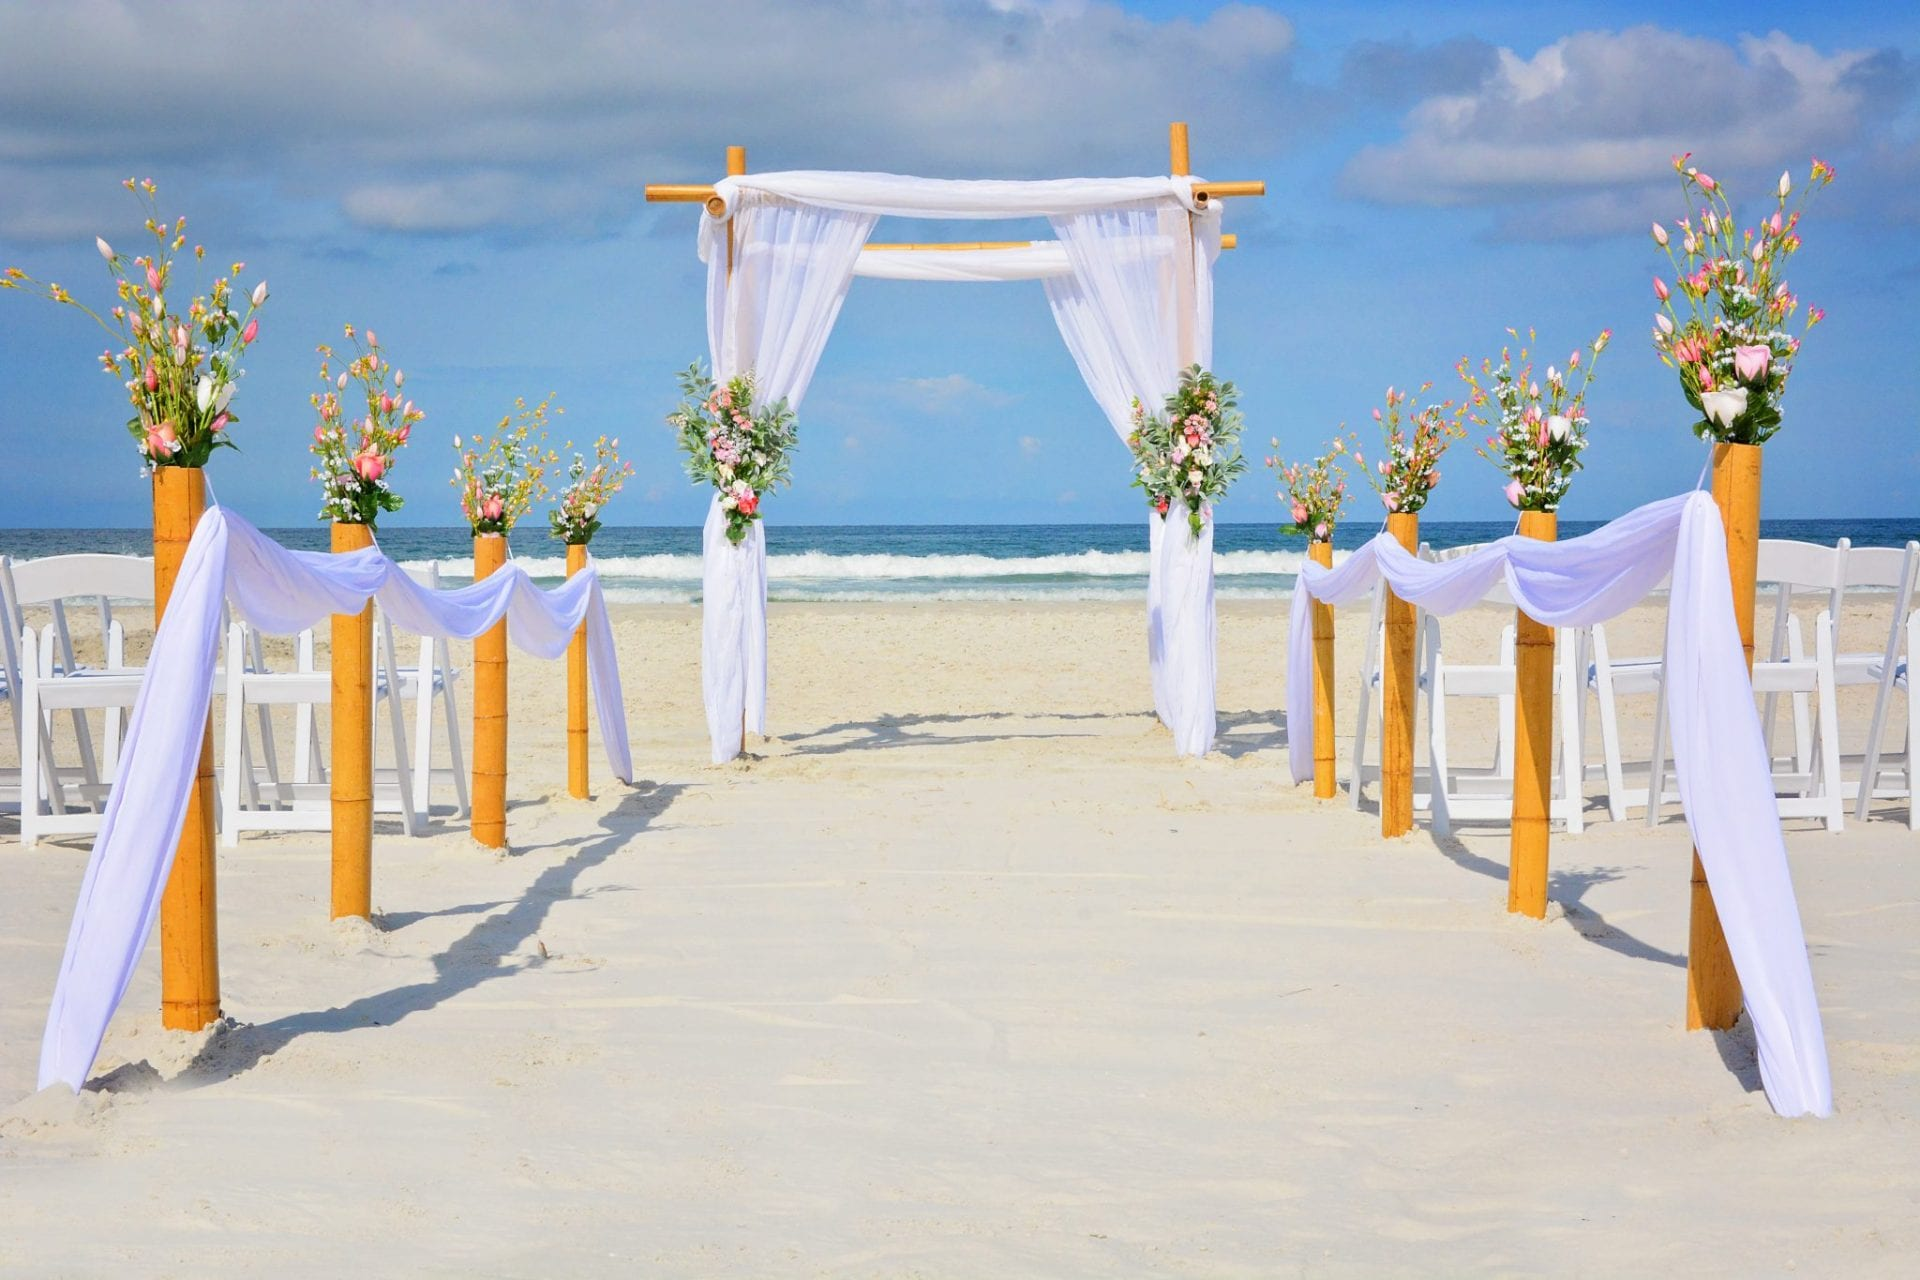 Floral draped bamboo wedding arch on the Florida beach